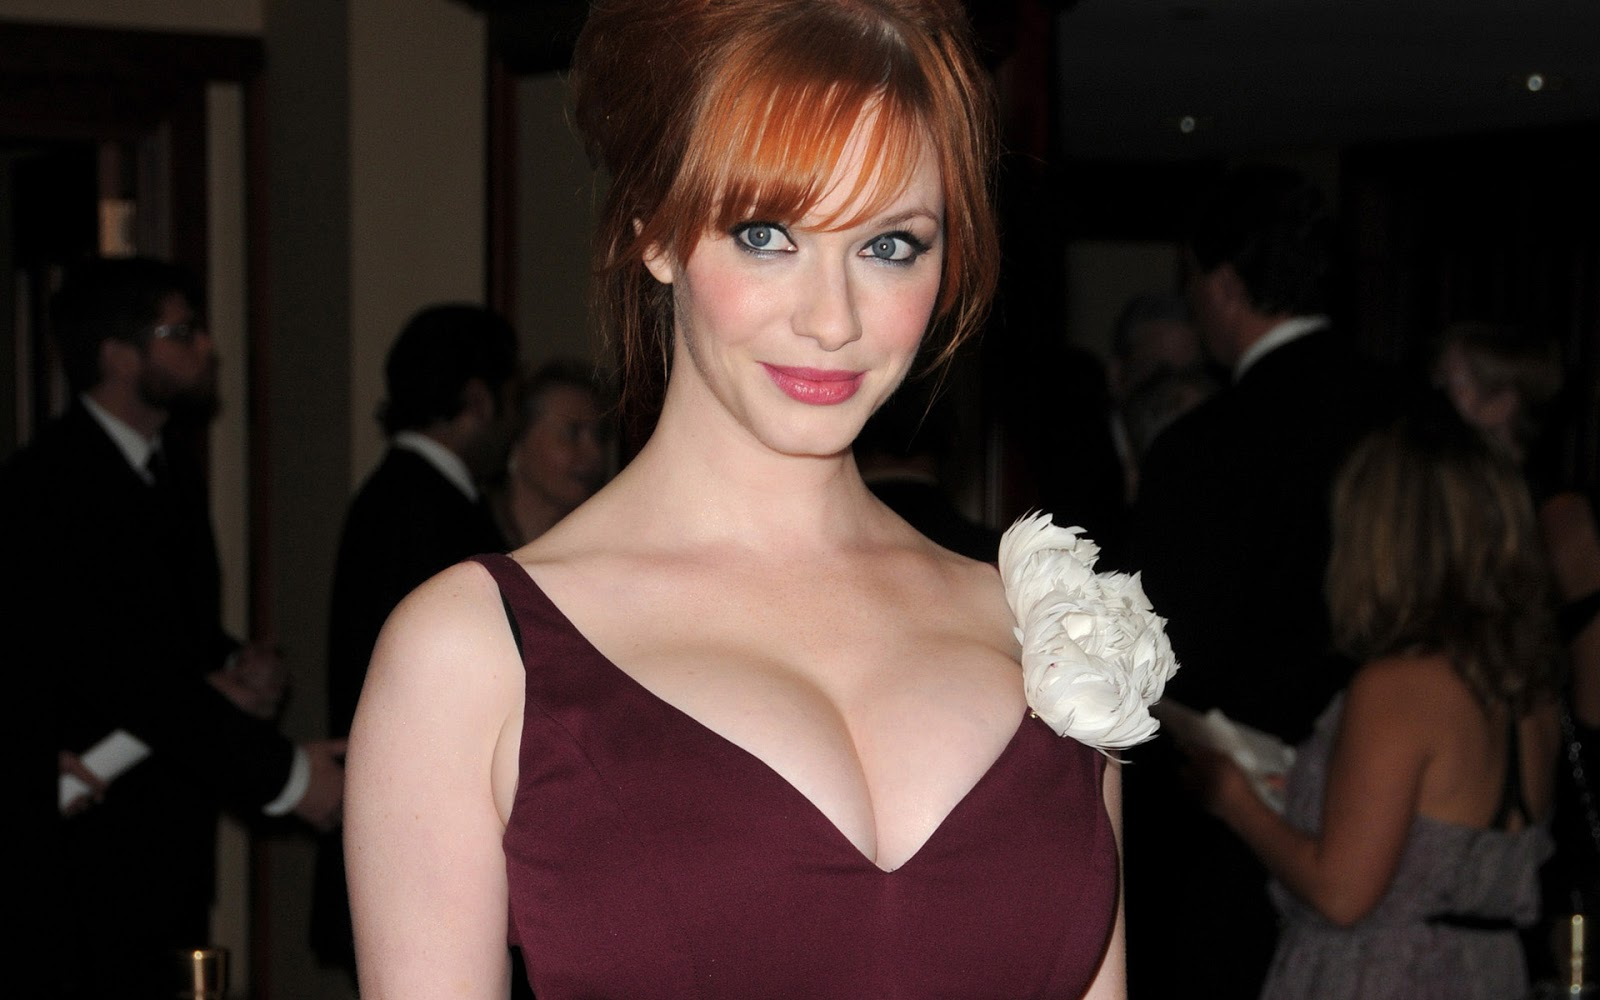 Hot Bio Celebrity Pictures Christina Hendricks Hot Hd Wallpaper 2013 1600x1000